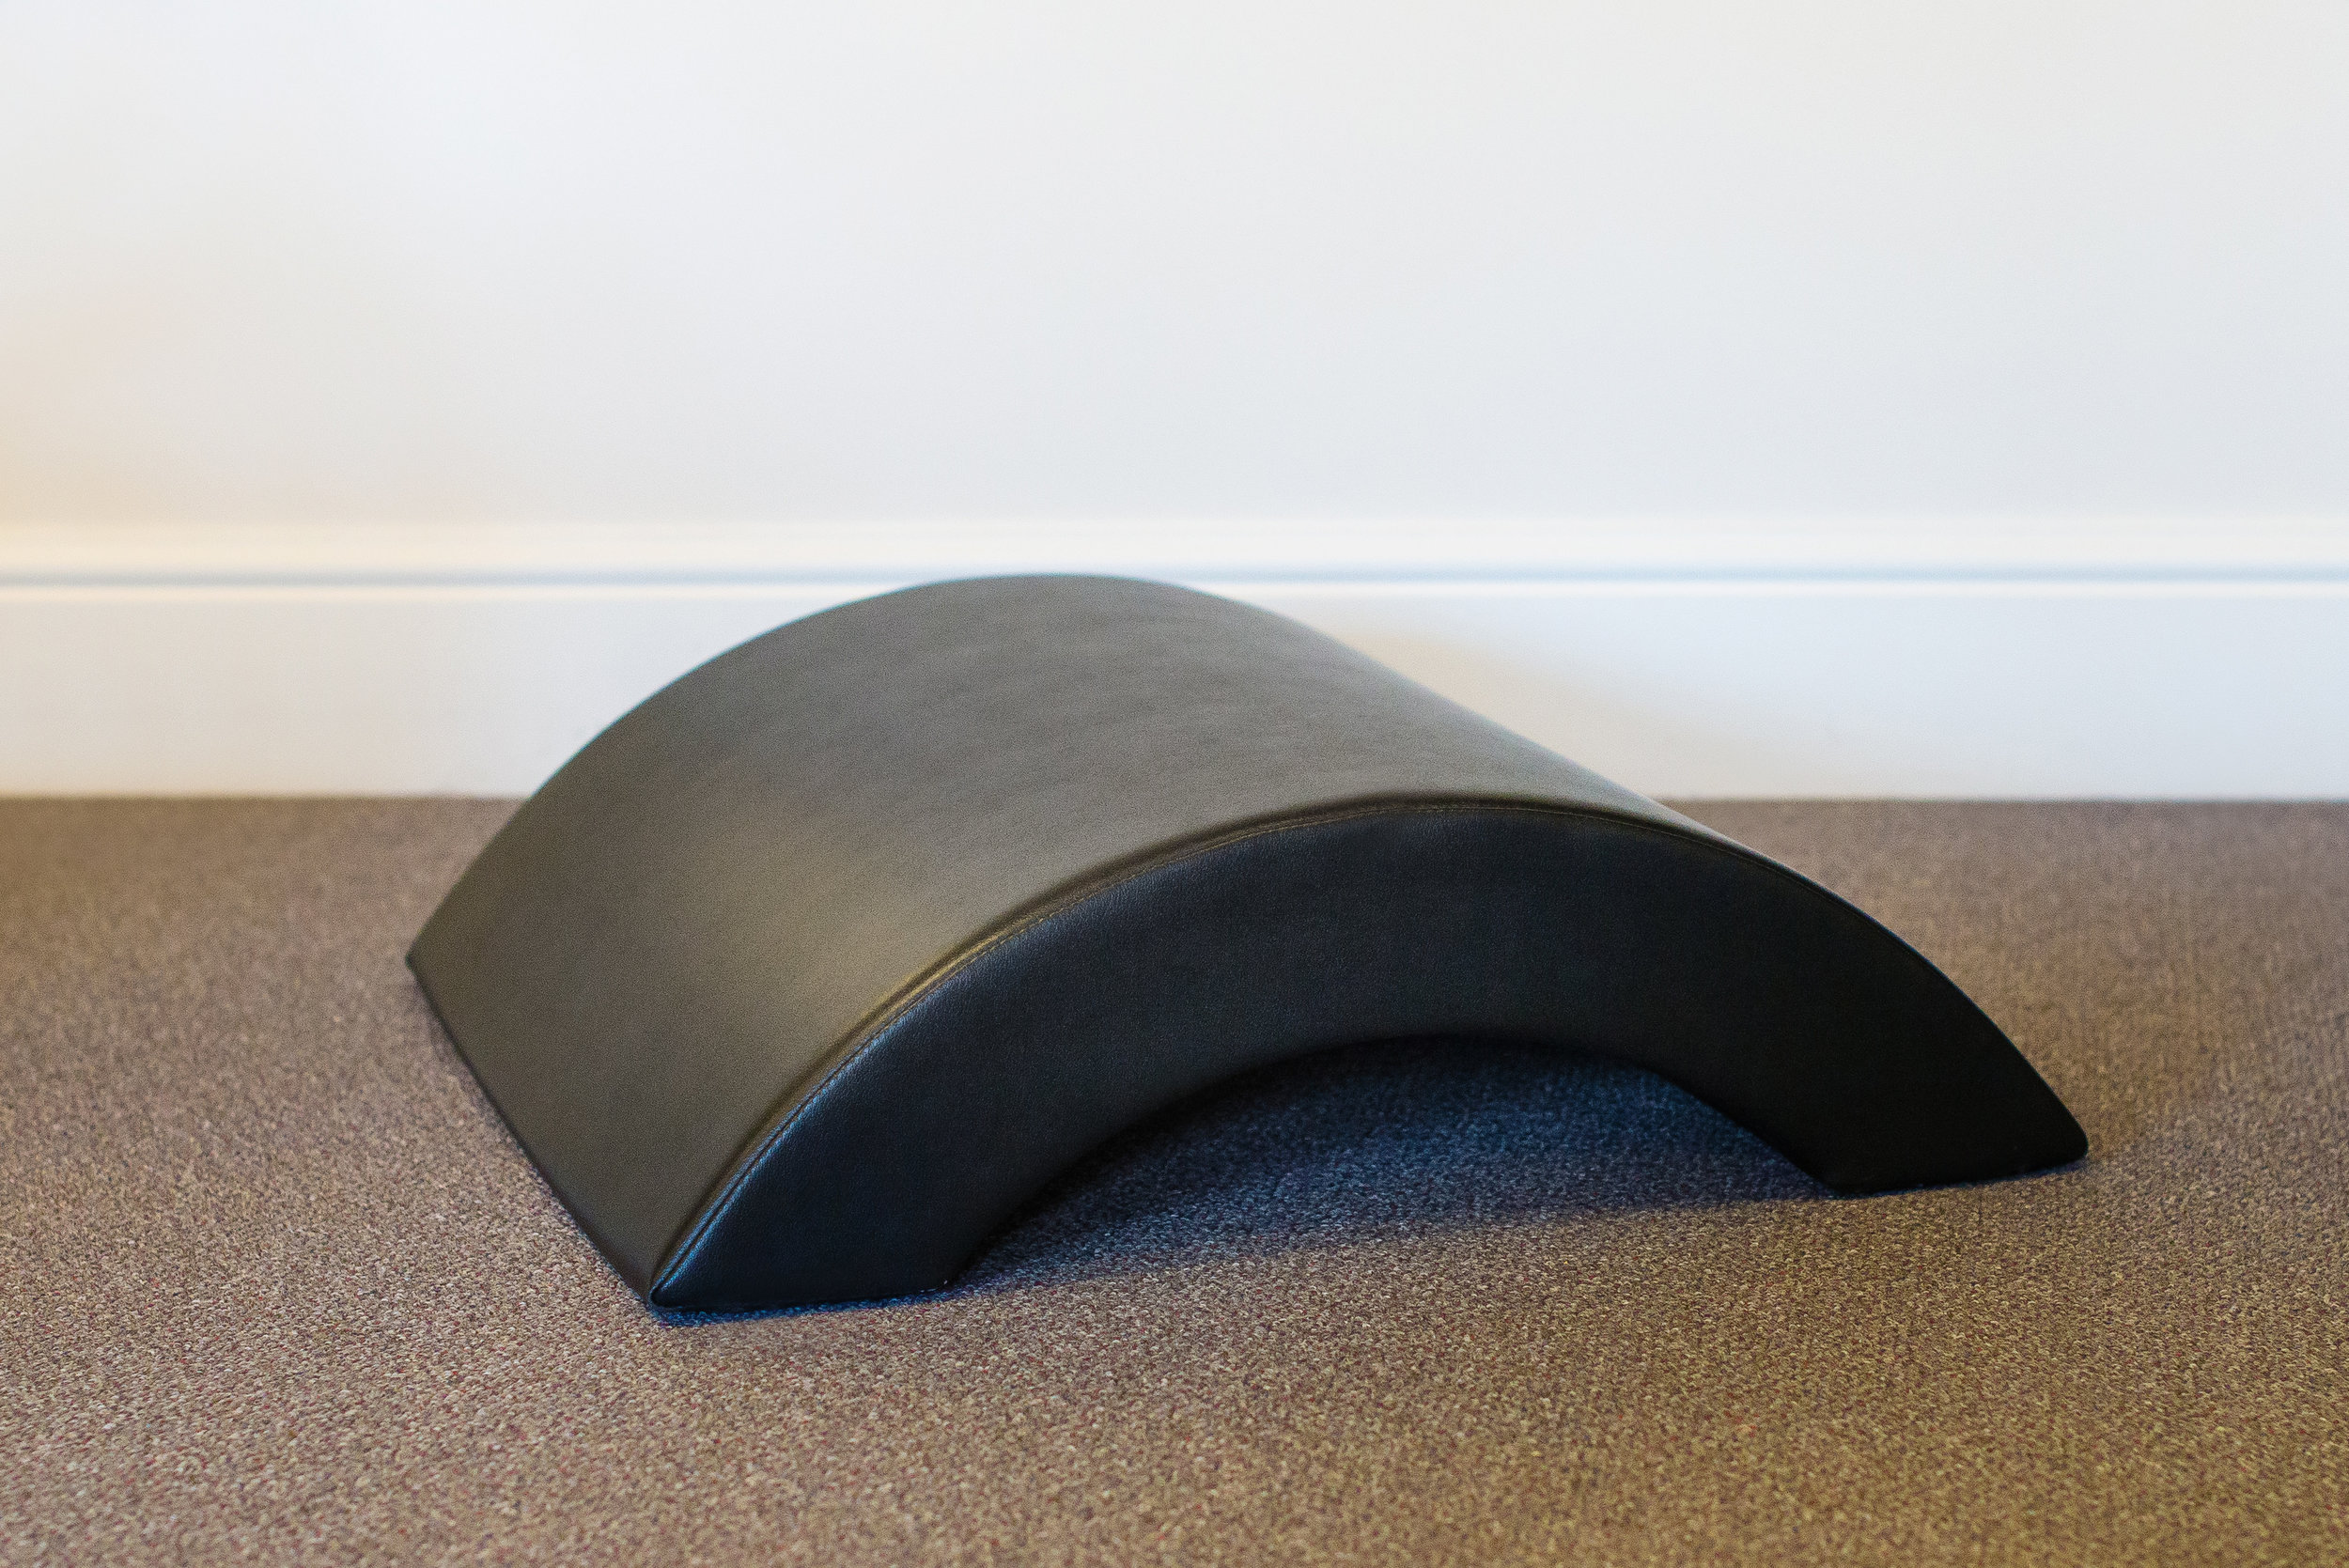 Arc Barrel - We have 3 types of barrels in the studio. The Arc Barrel, Ladder Barrel and Spine Corrector.The Arc Barrel, being the smallest features a gentle curve which helps to decompress and lengthen the spine. This can be uses to increase or decrease challenge during mathwork exercises and assist rehab clients.